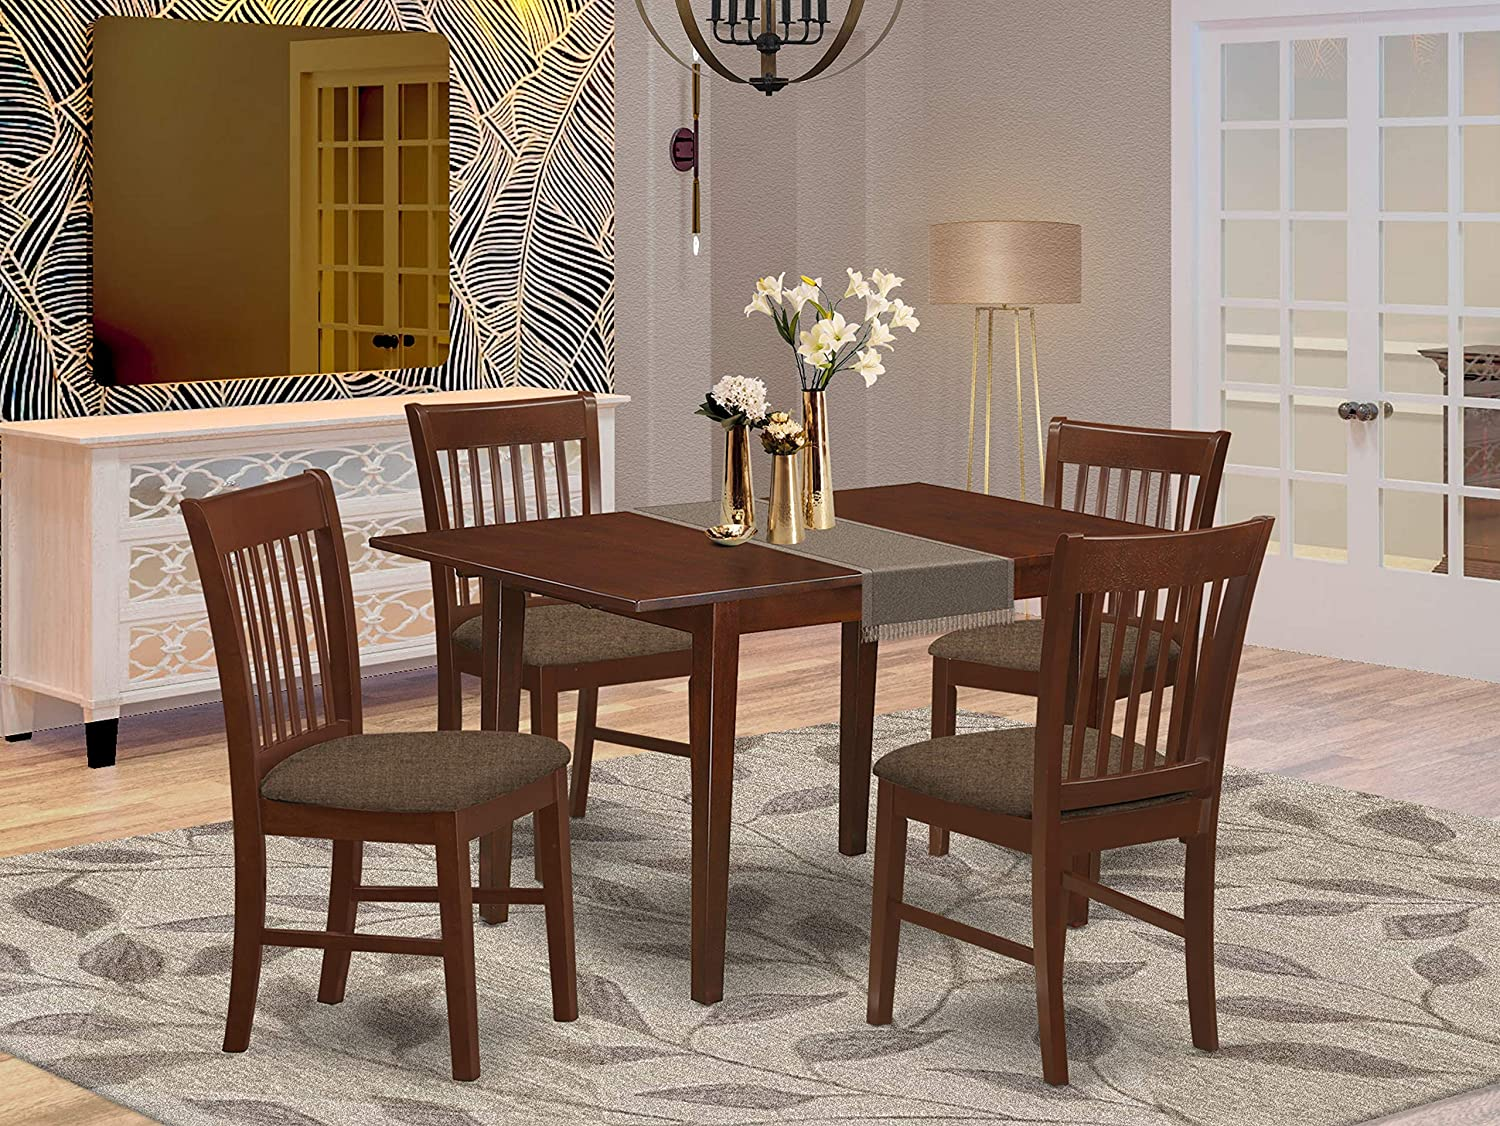 Amazon Com 5 Pc Dinette Set For Small Spaces Small Table With 4 Dining Table Chairs Furniture Decor